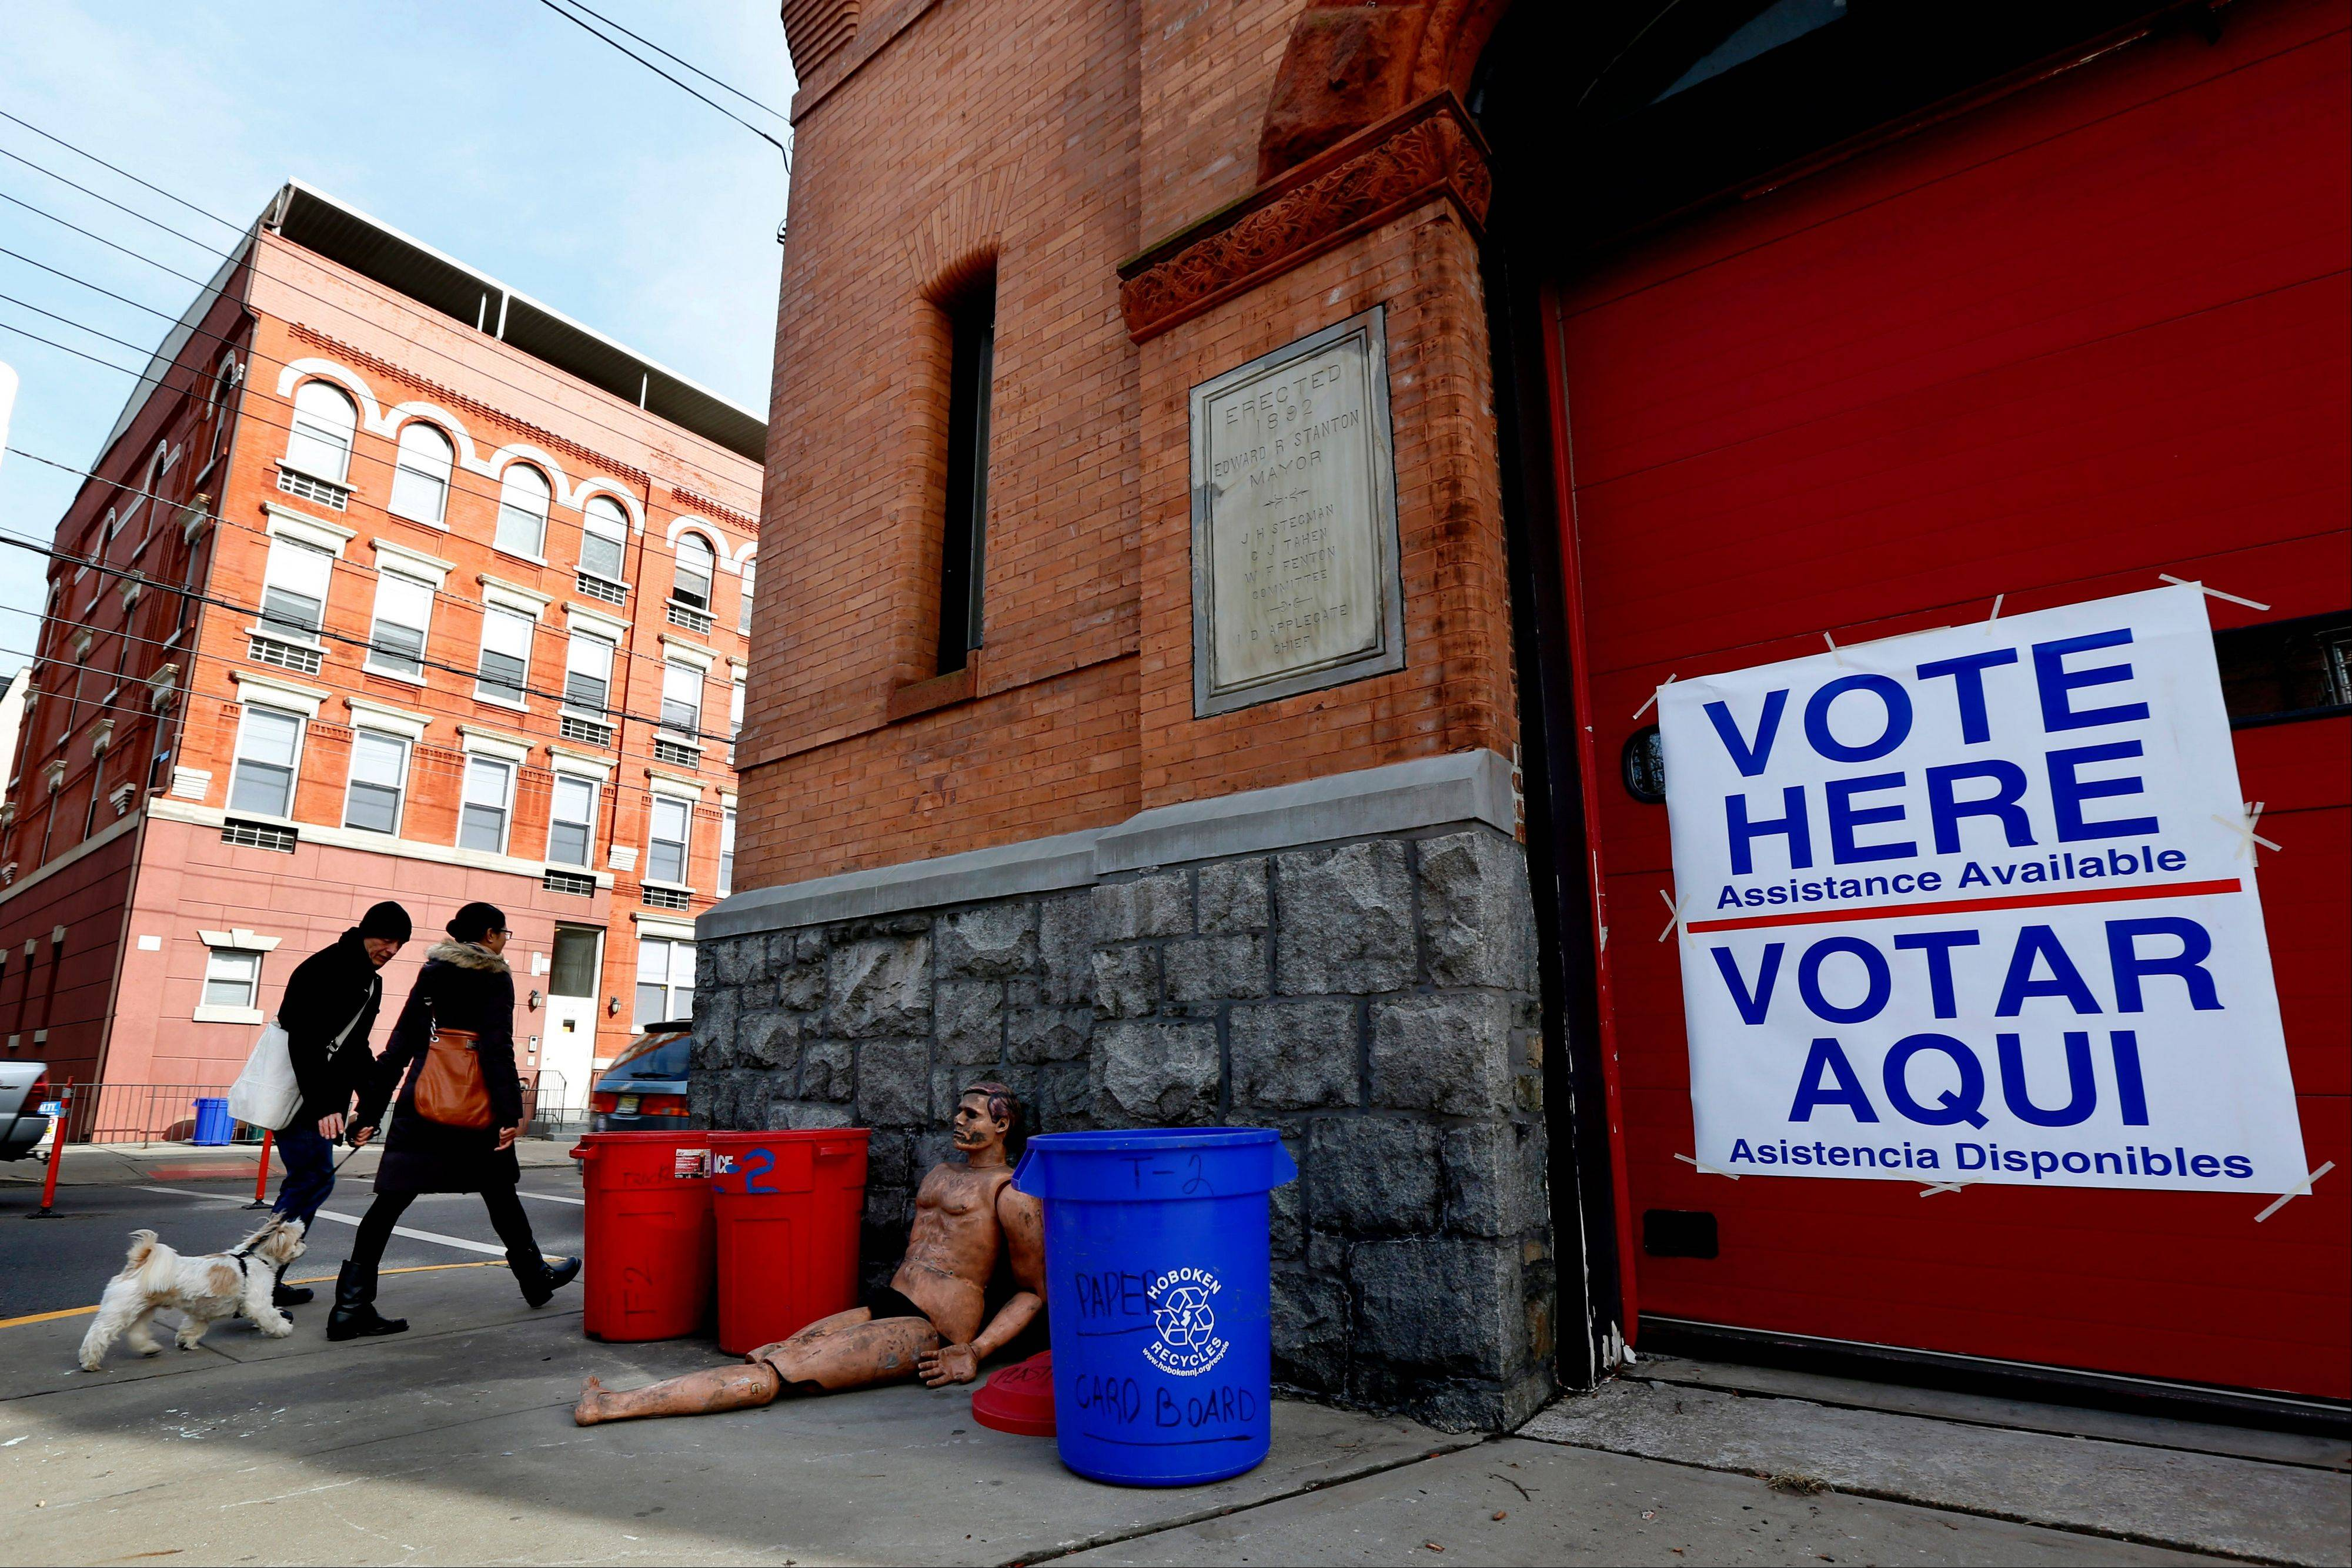 People walk with a dog toward the main entrance of a polling place at a Hoboken Fire Department firehouse on Election Day, Tuesday, Nov. 6, 2012, in Hoboken, N.J.